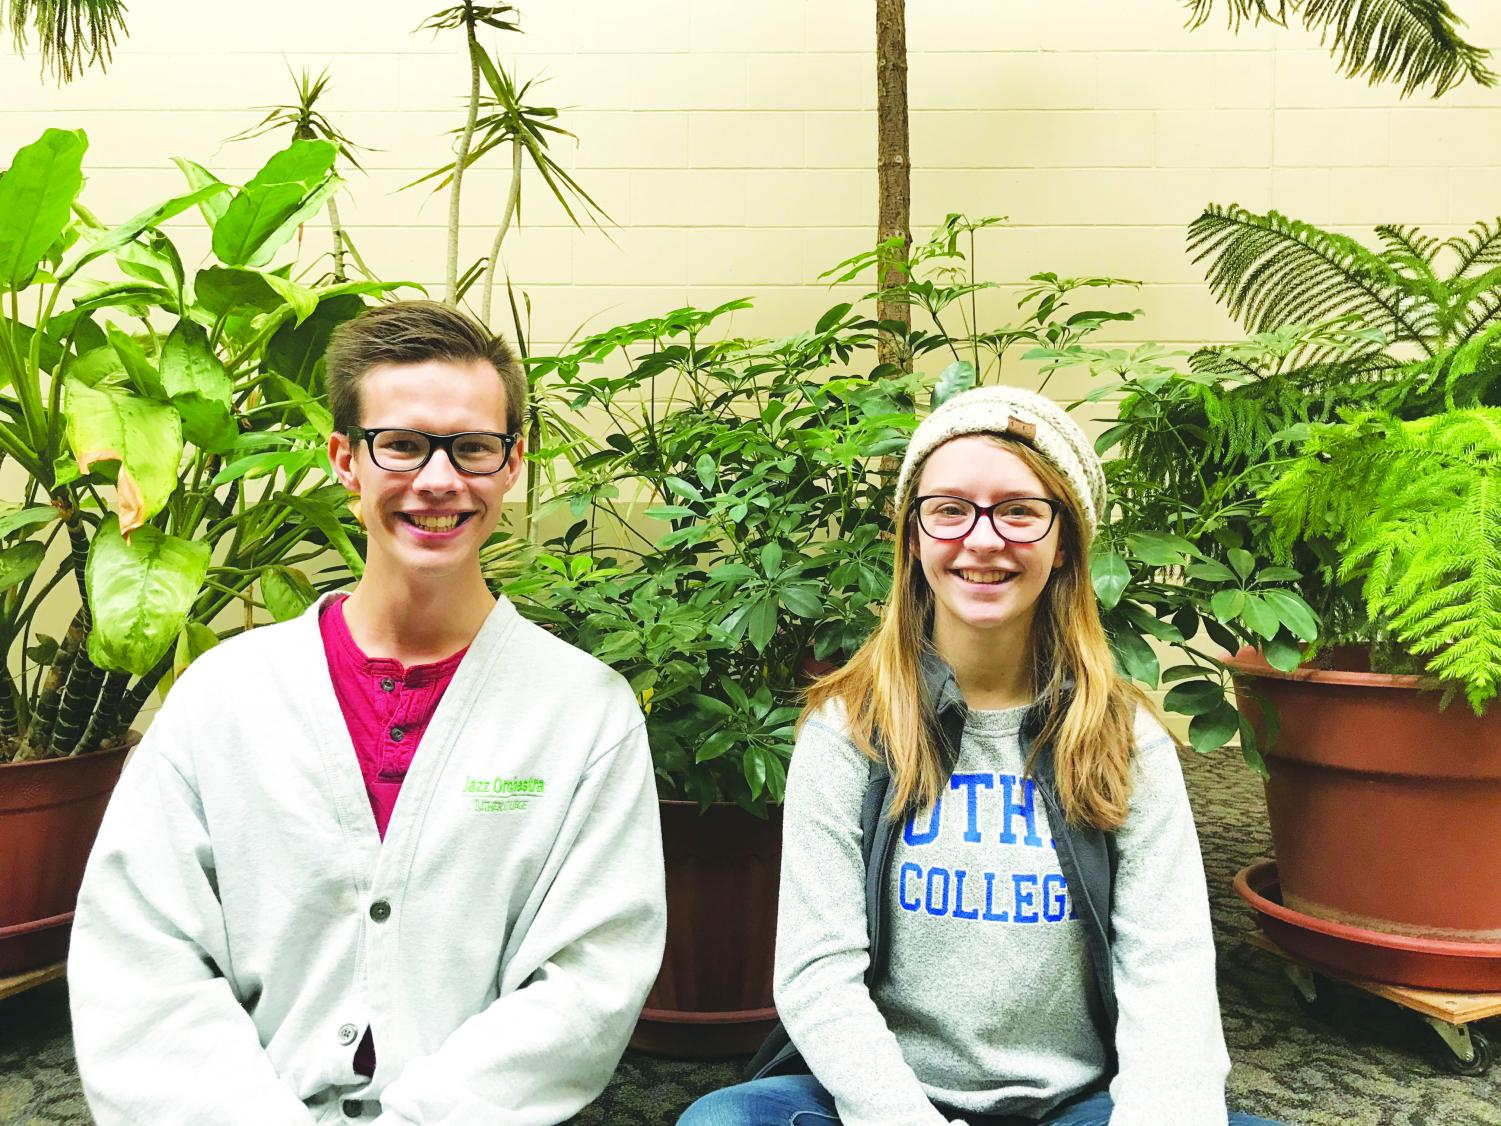 Eliot Douma ('19) and Michaela Gyure ('19) both participate in WILD at the Decorah Lutheran Church.